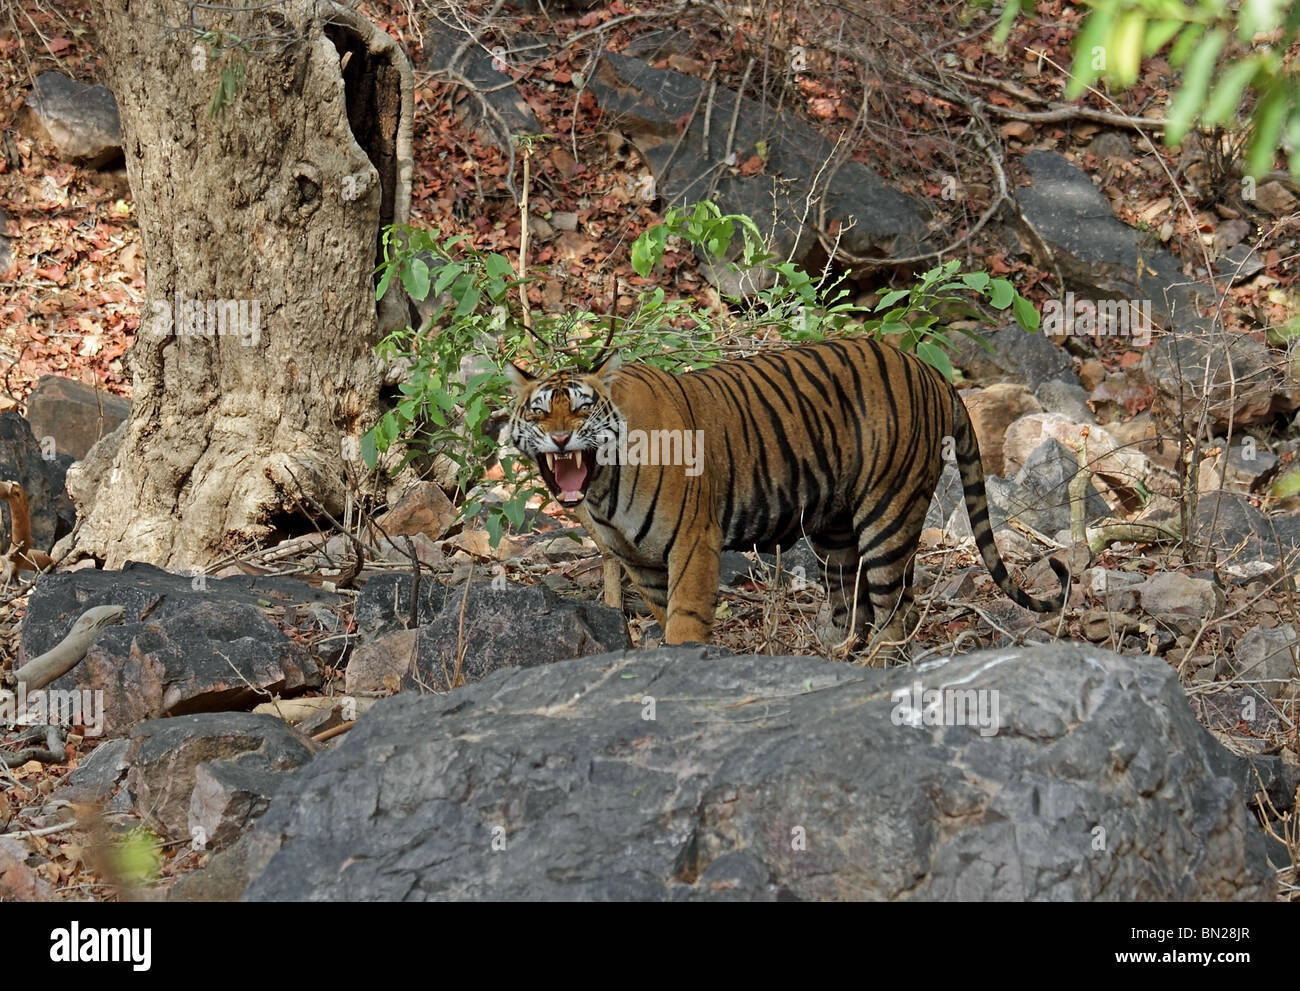 Tiger snarling with anger in Ranthambhore National Park, India - Stock Image